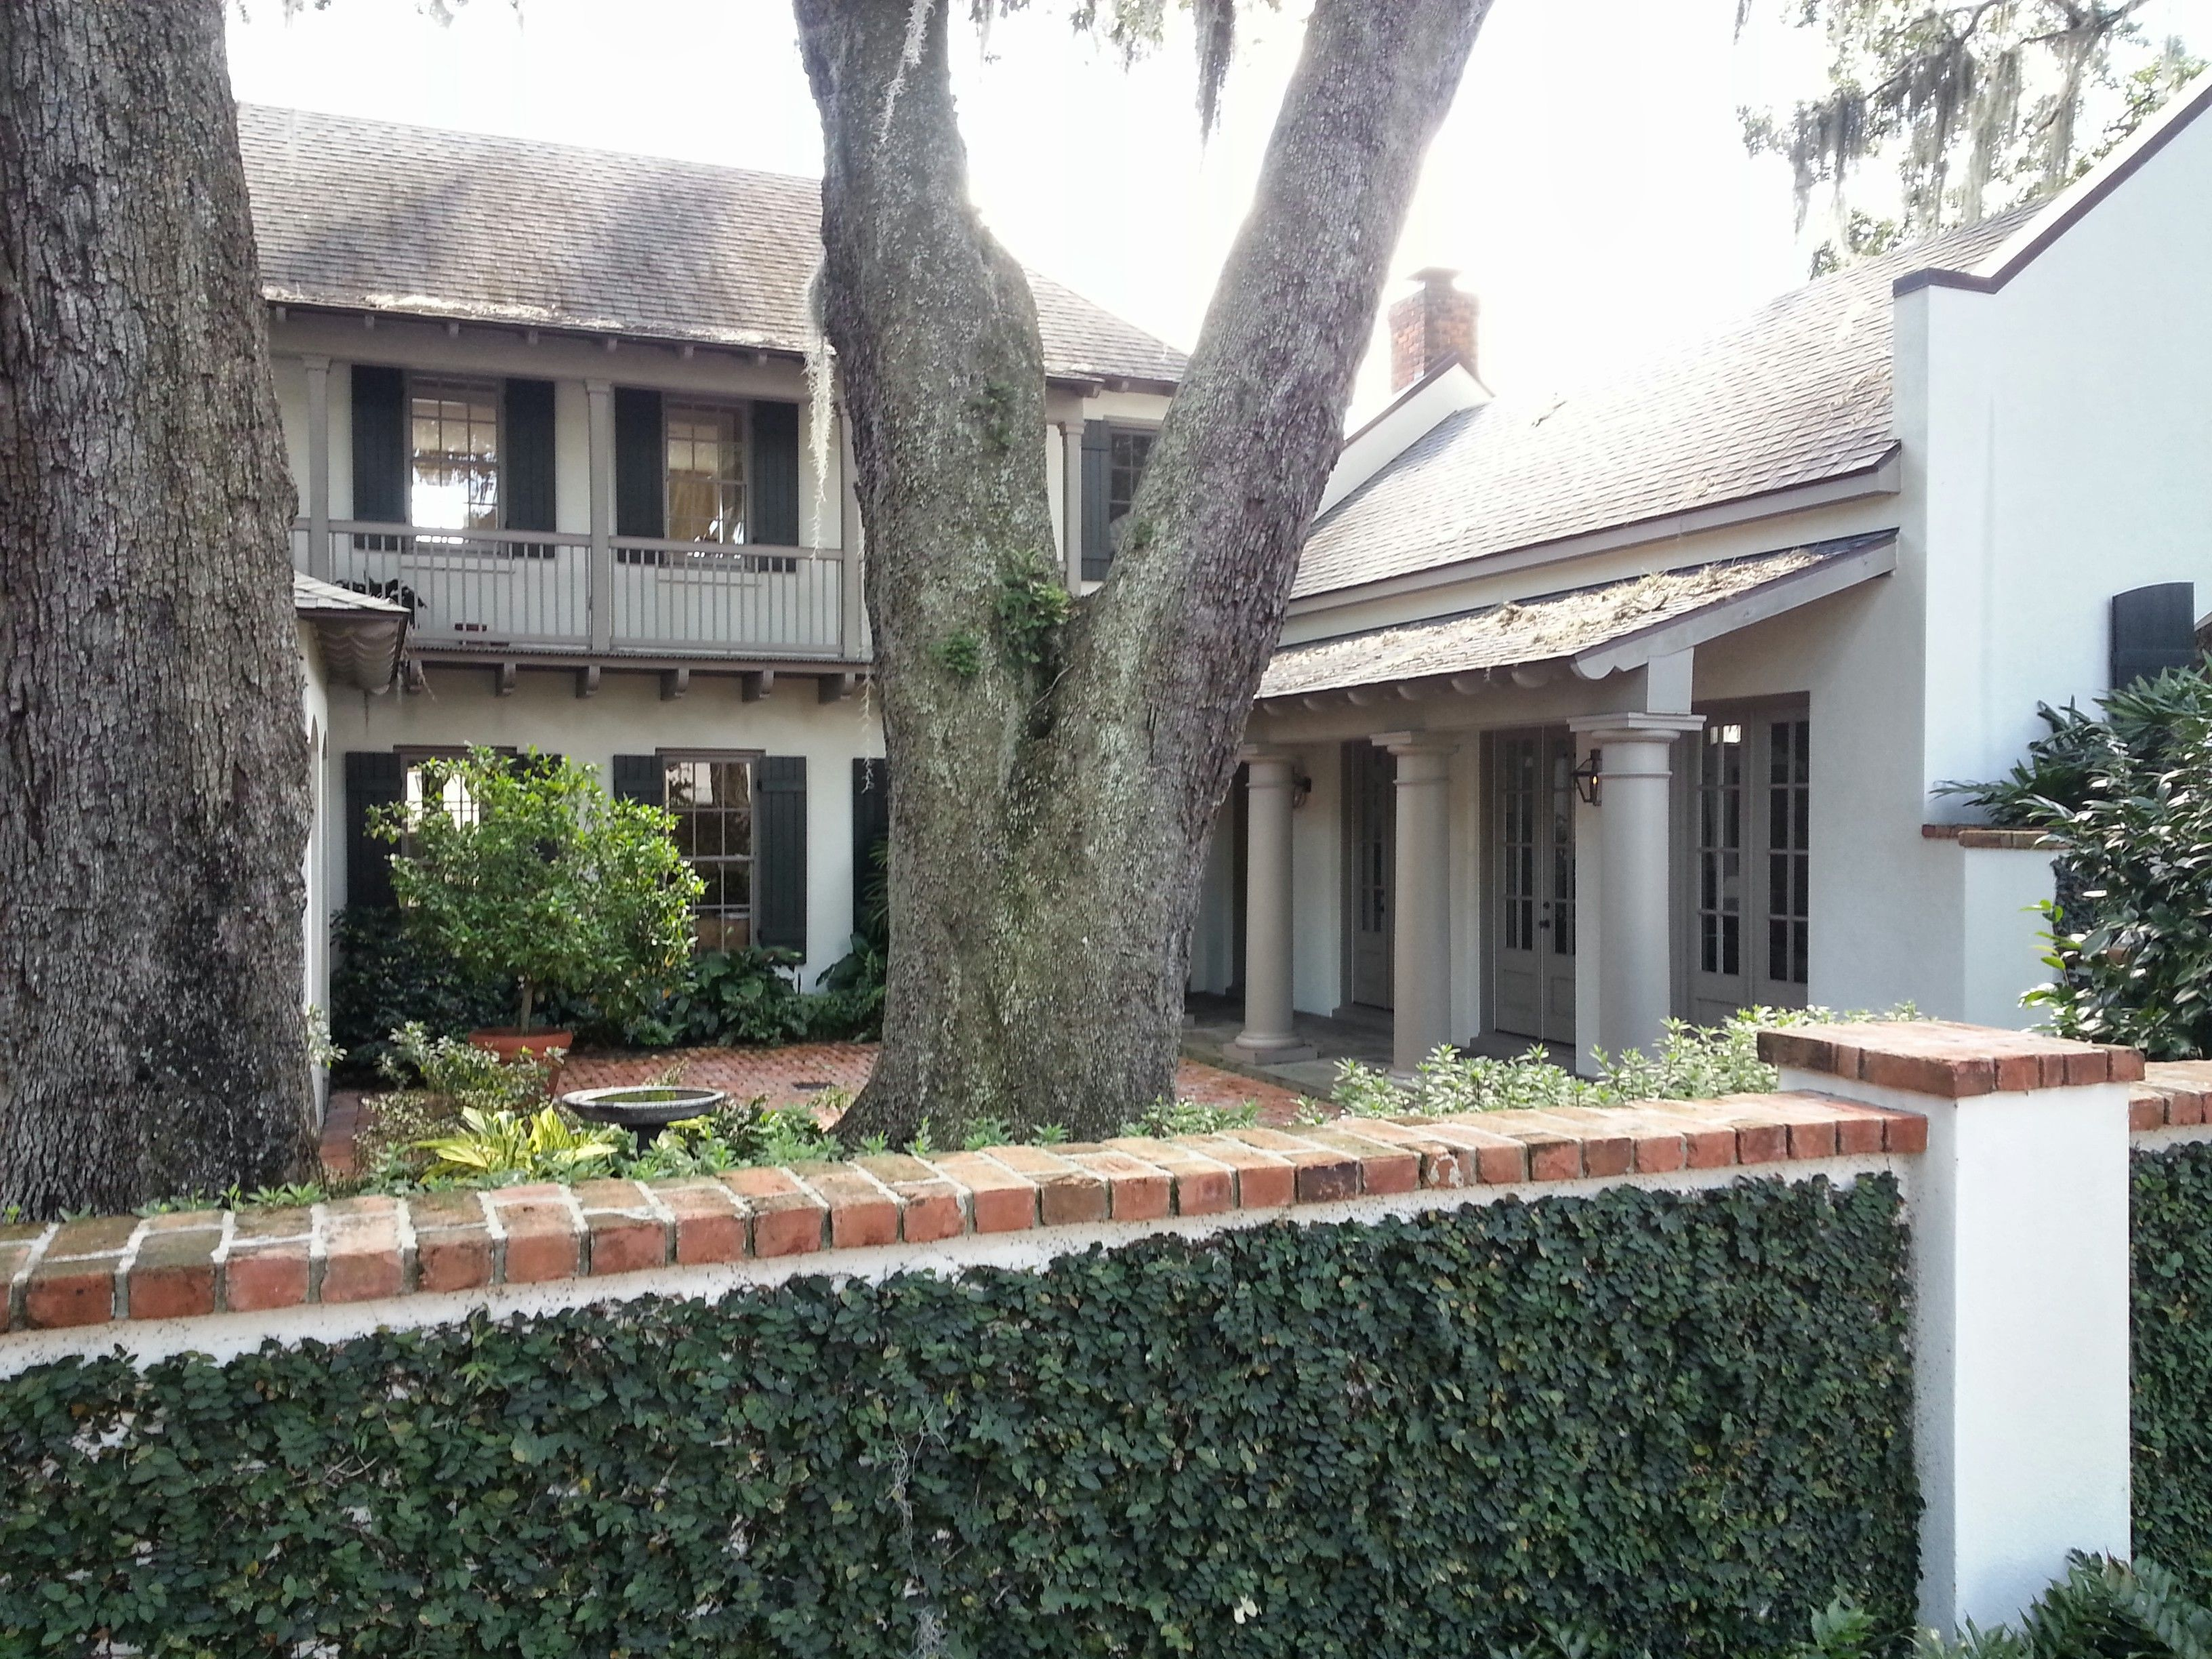 New Orleans Courtyard Home Courtyard House Architecture Plan Design